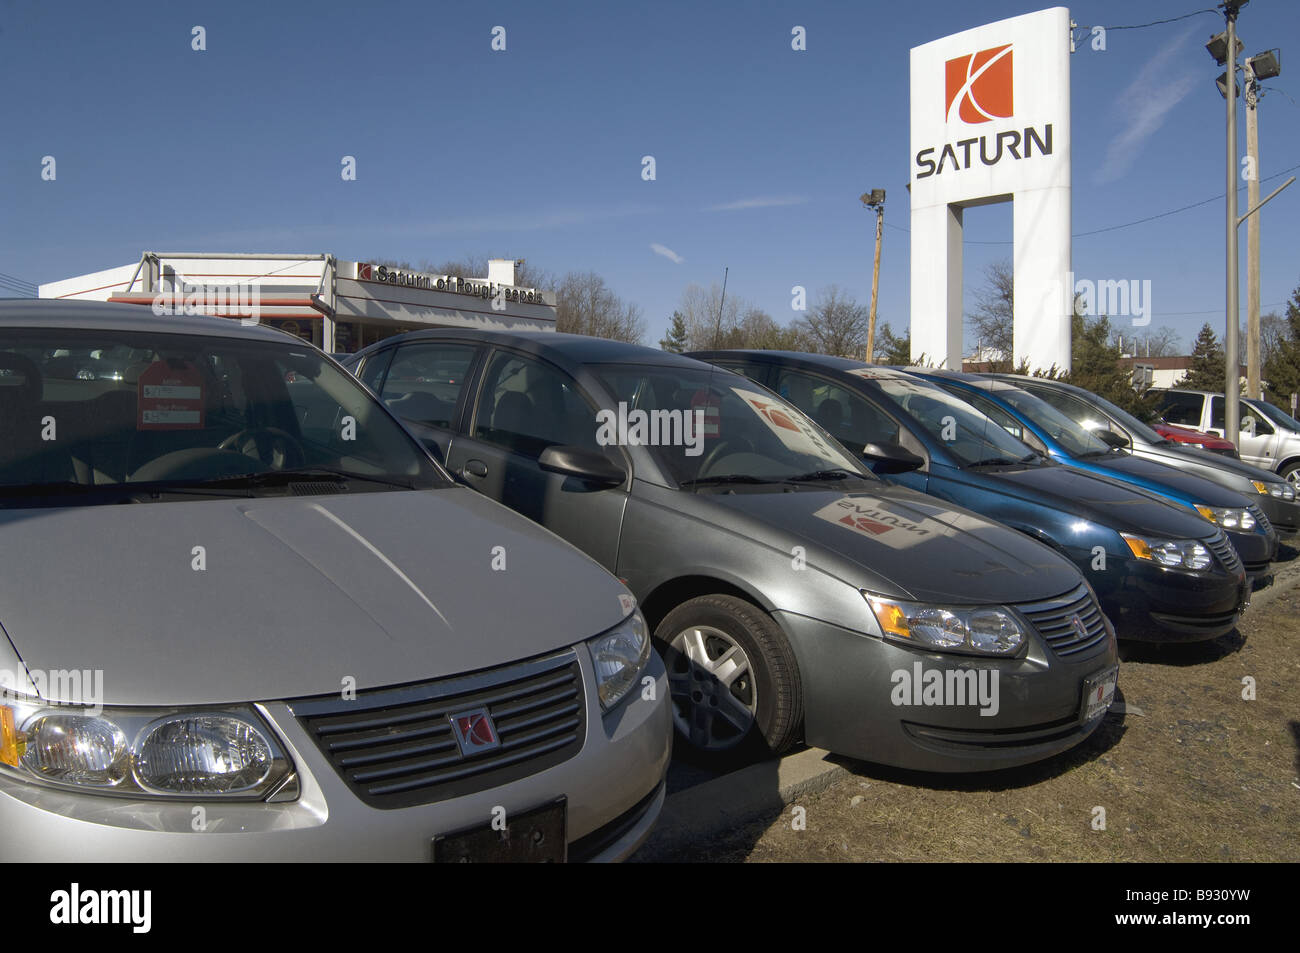 Saturn car dealership lot during 2009 recession full of unsold ...